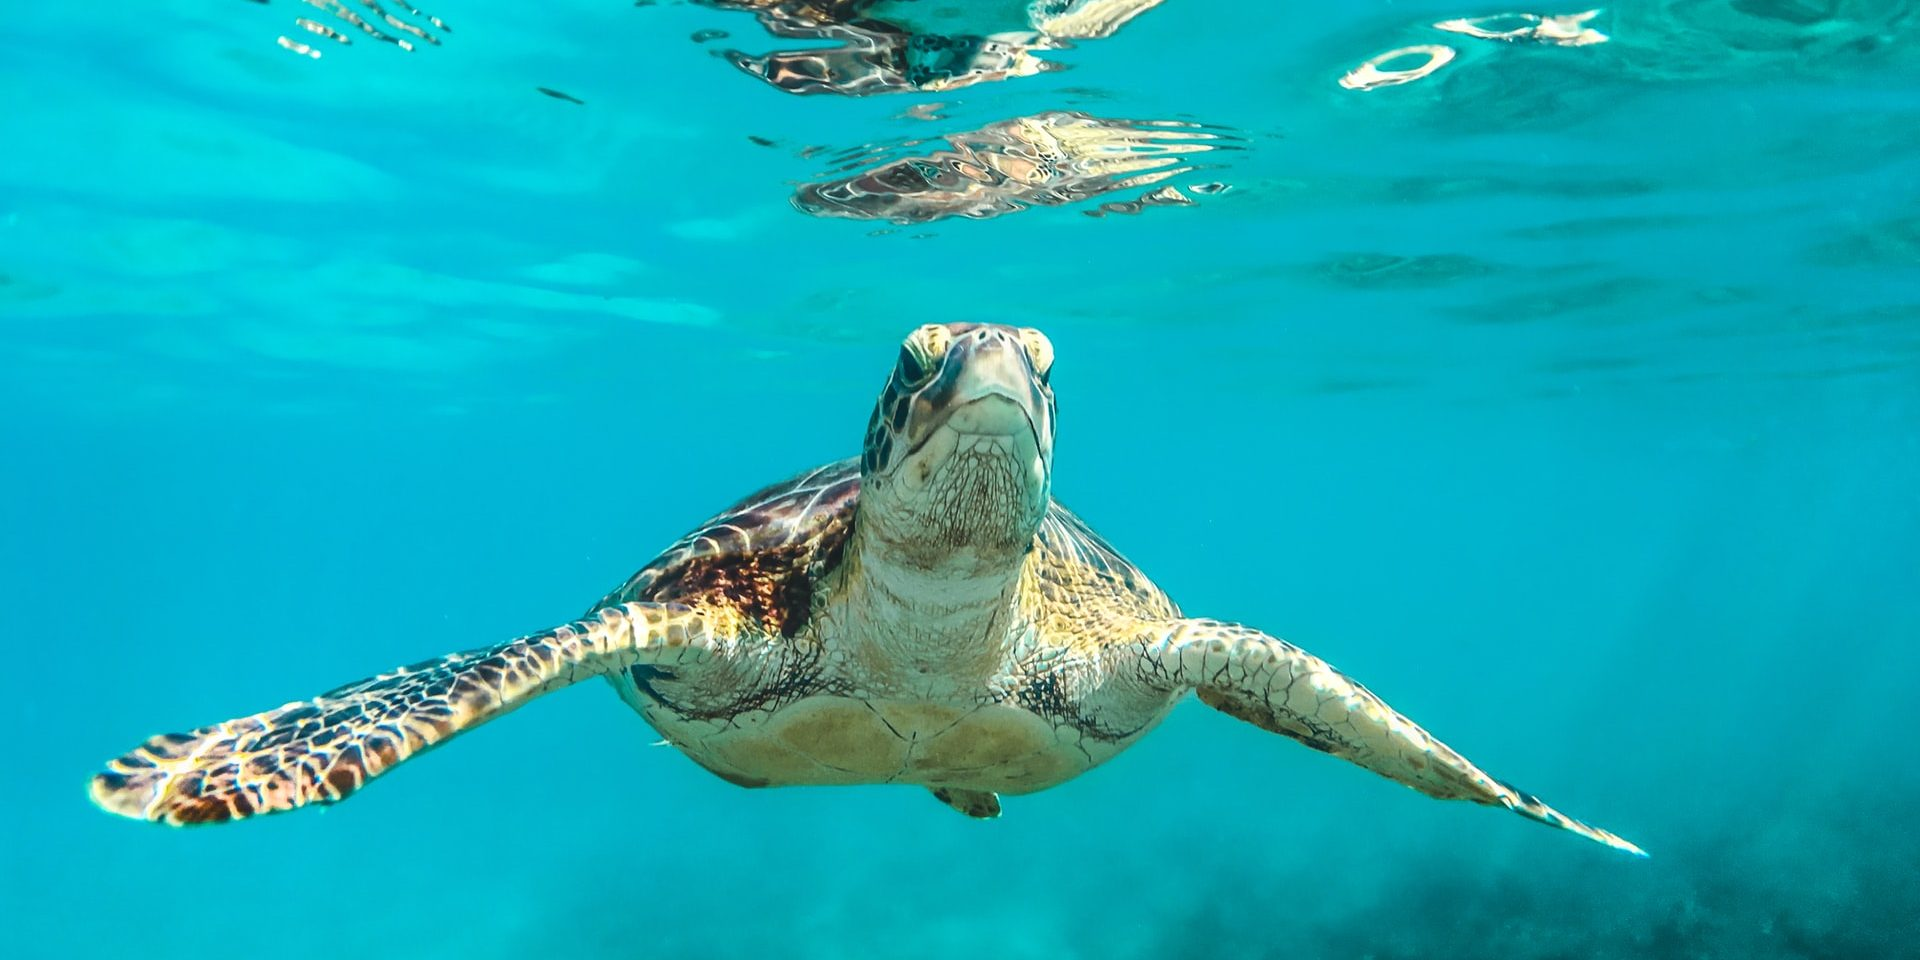 Turtle in the waters of Barbados